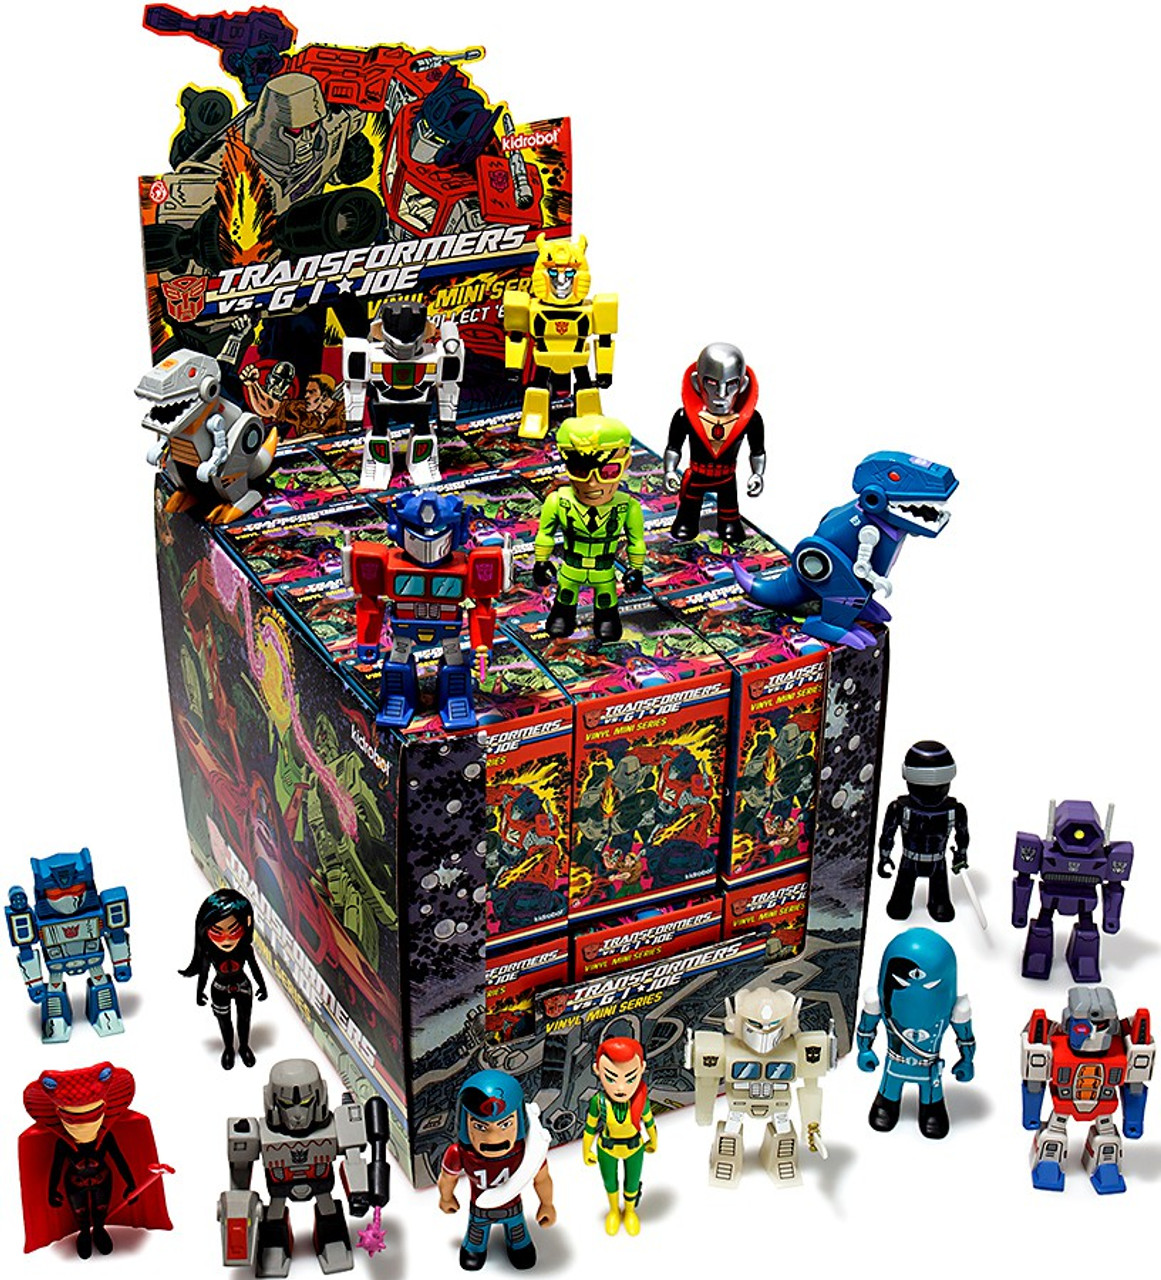 Transformers & GI Joe Vinyl Mini Series Mystery Box [24 Packs] (Pre-Order ships January)